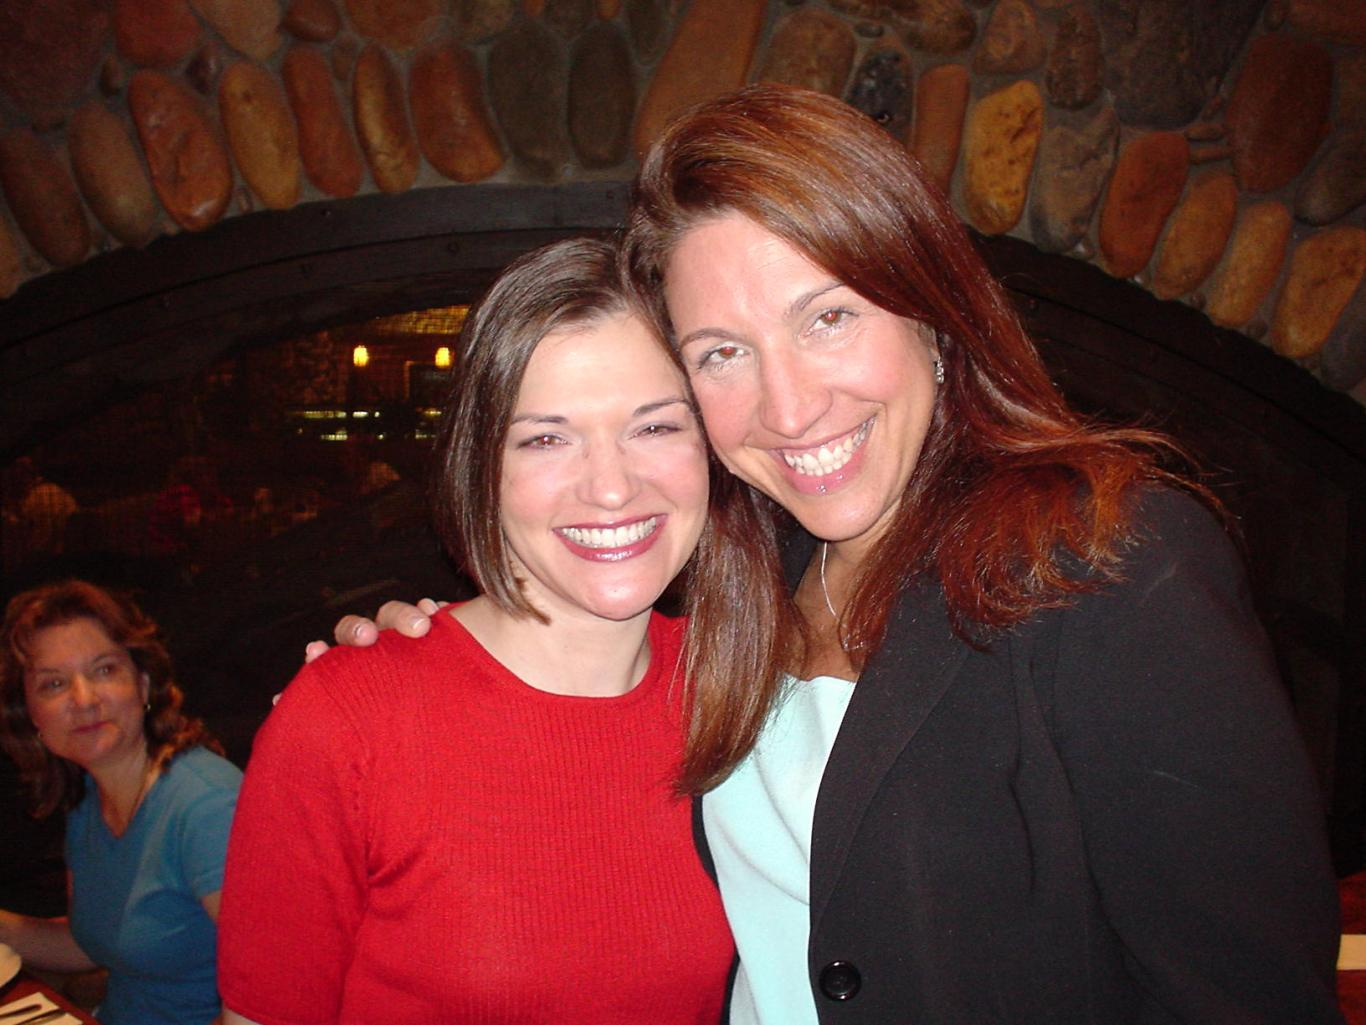 At the 2005 Romance Writers of America national conference with client Eileen Cassidy Rivera